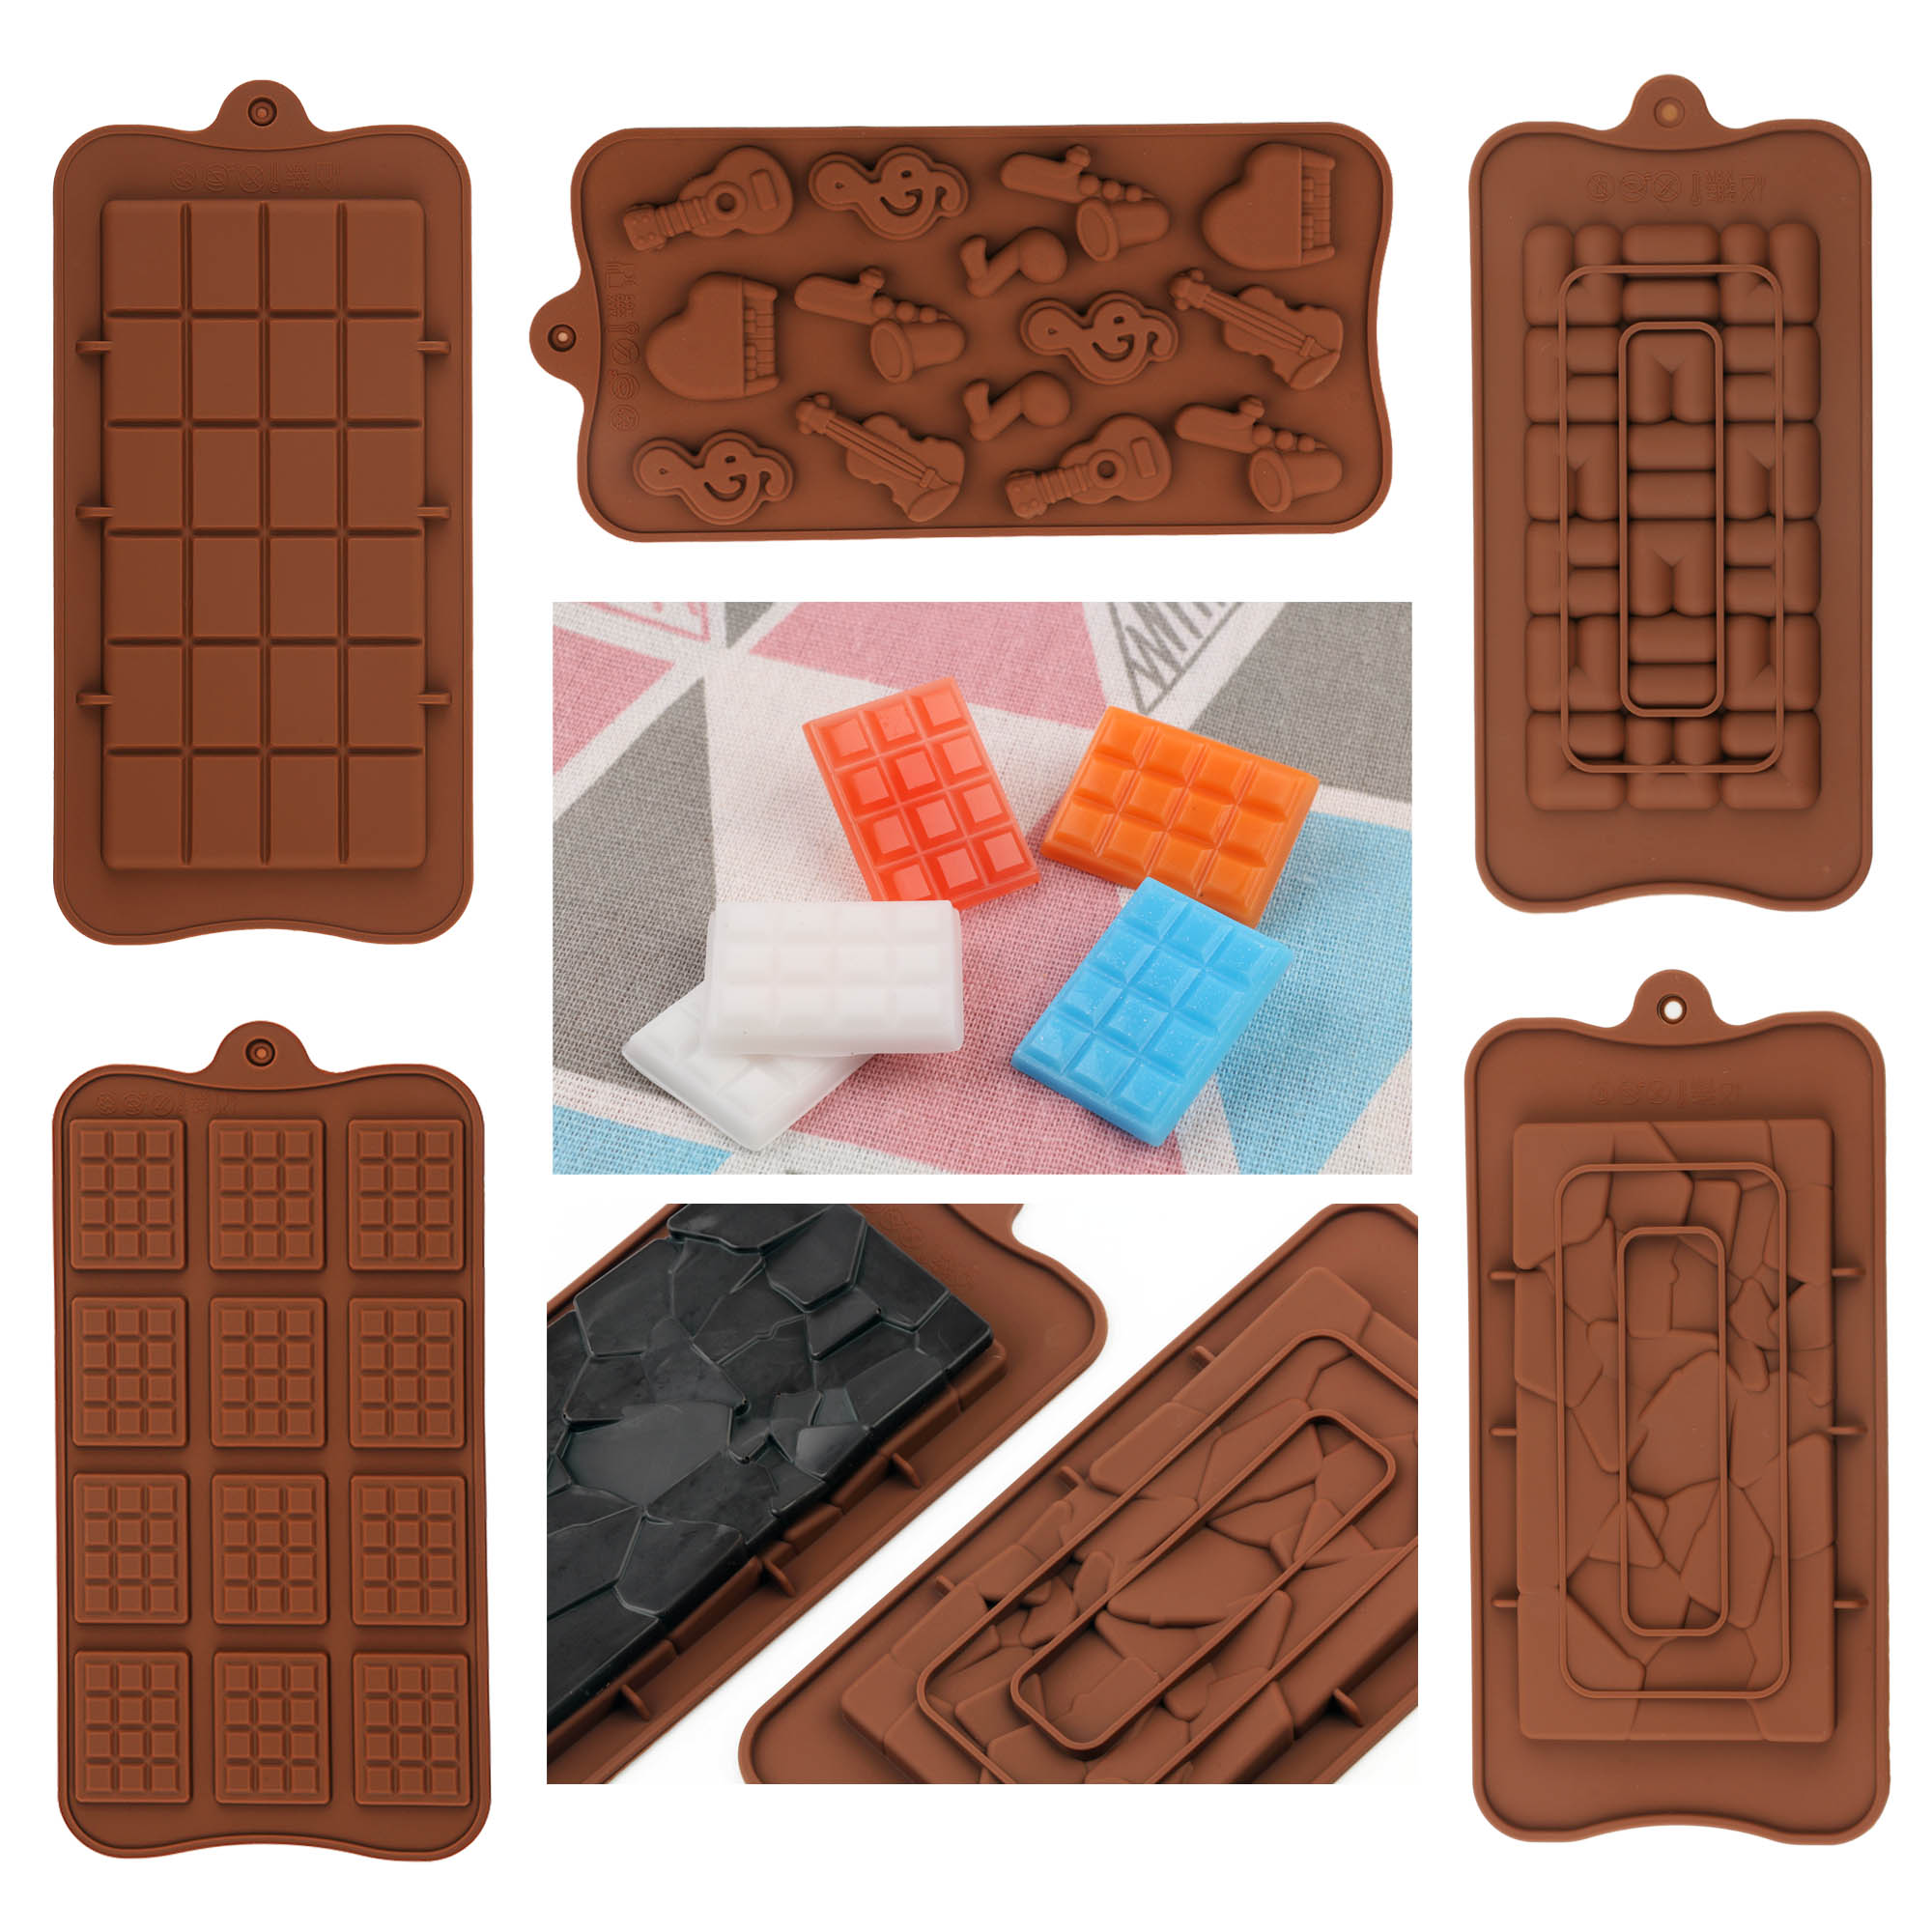 New Silicone Chocolate Bar Candy Mold Baking Molds for Chocolate Bar Party Cake Decoratio Candy Jelly Diy Kitchen Gadgets